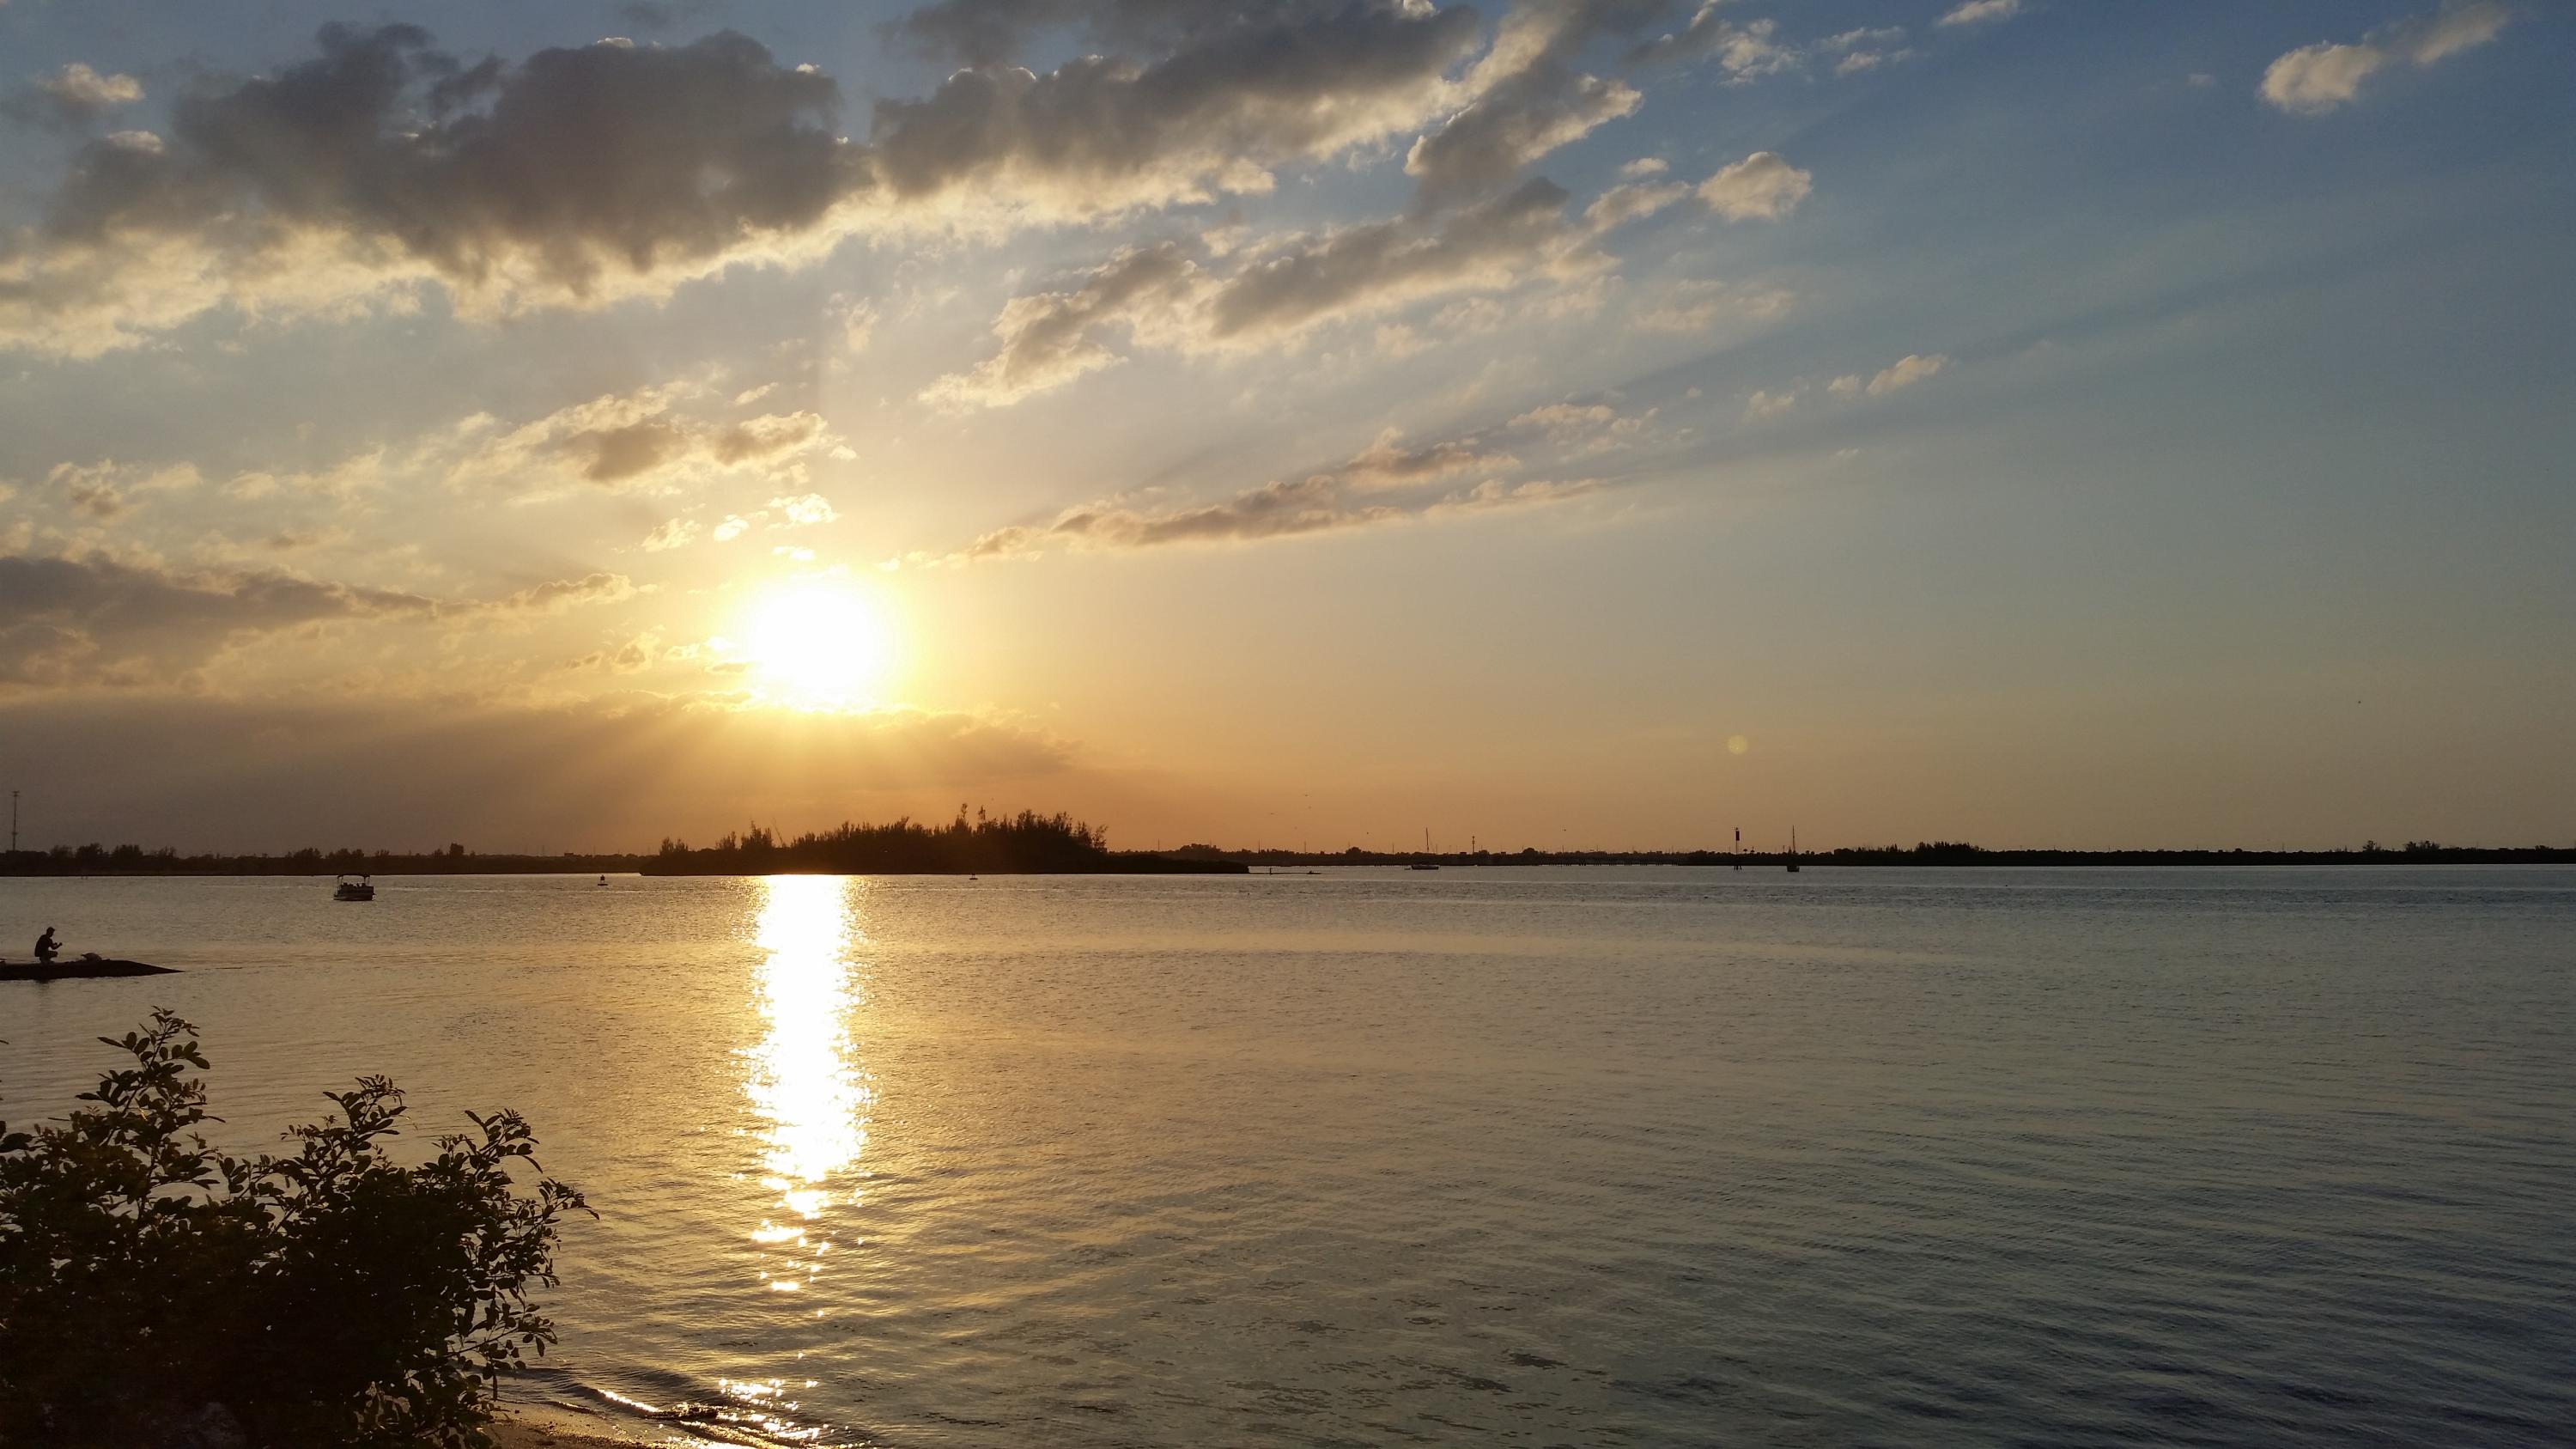 Fort Pierce Inlet at Sunset